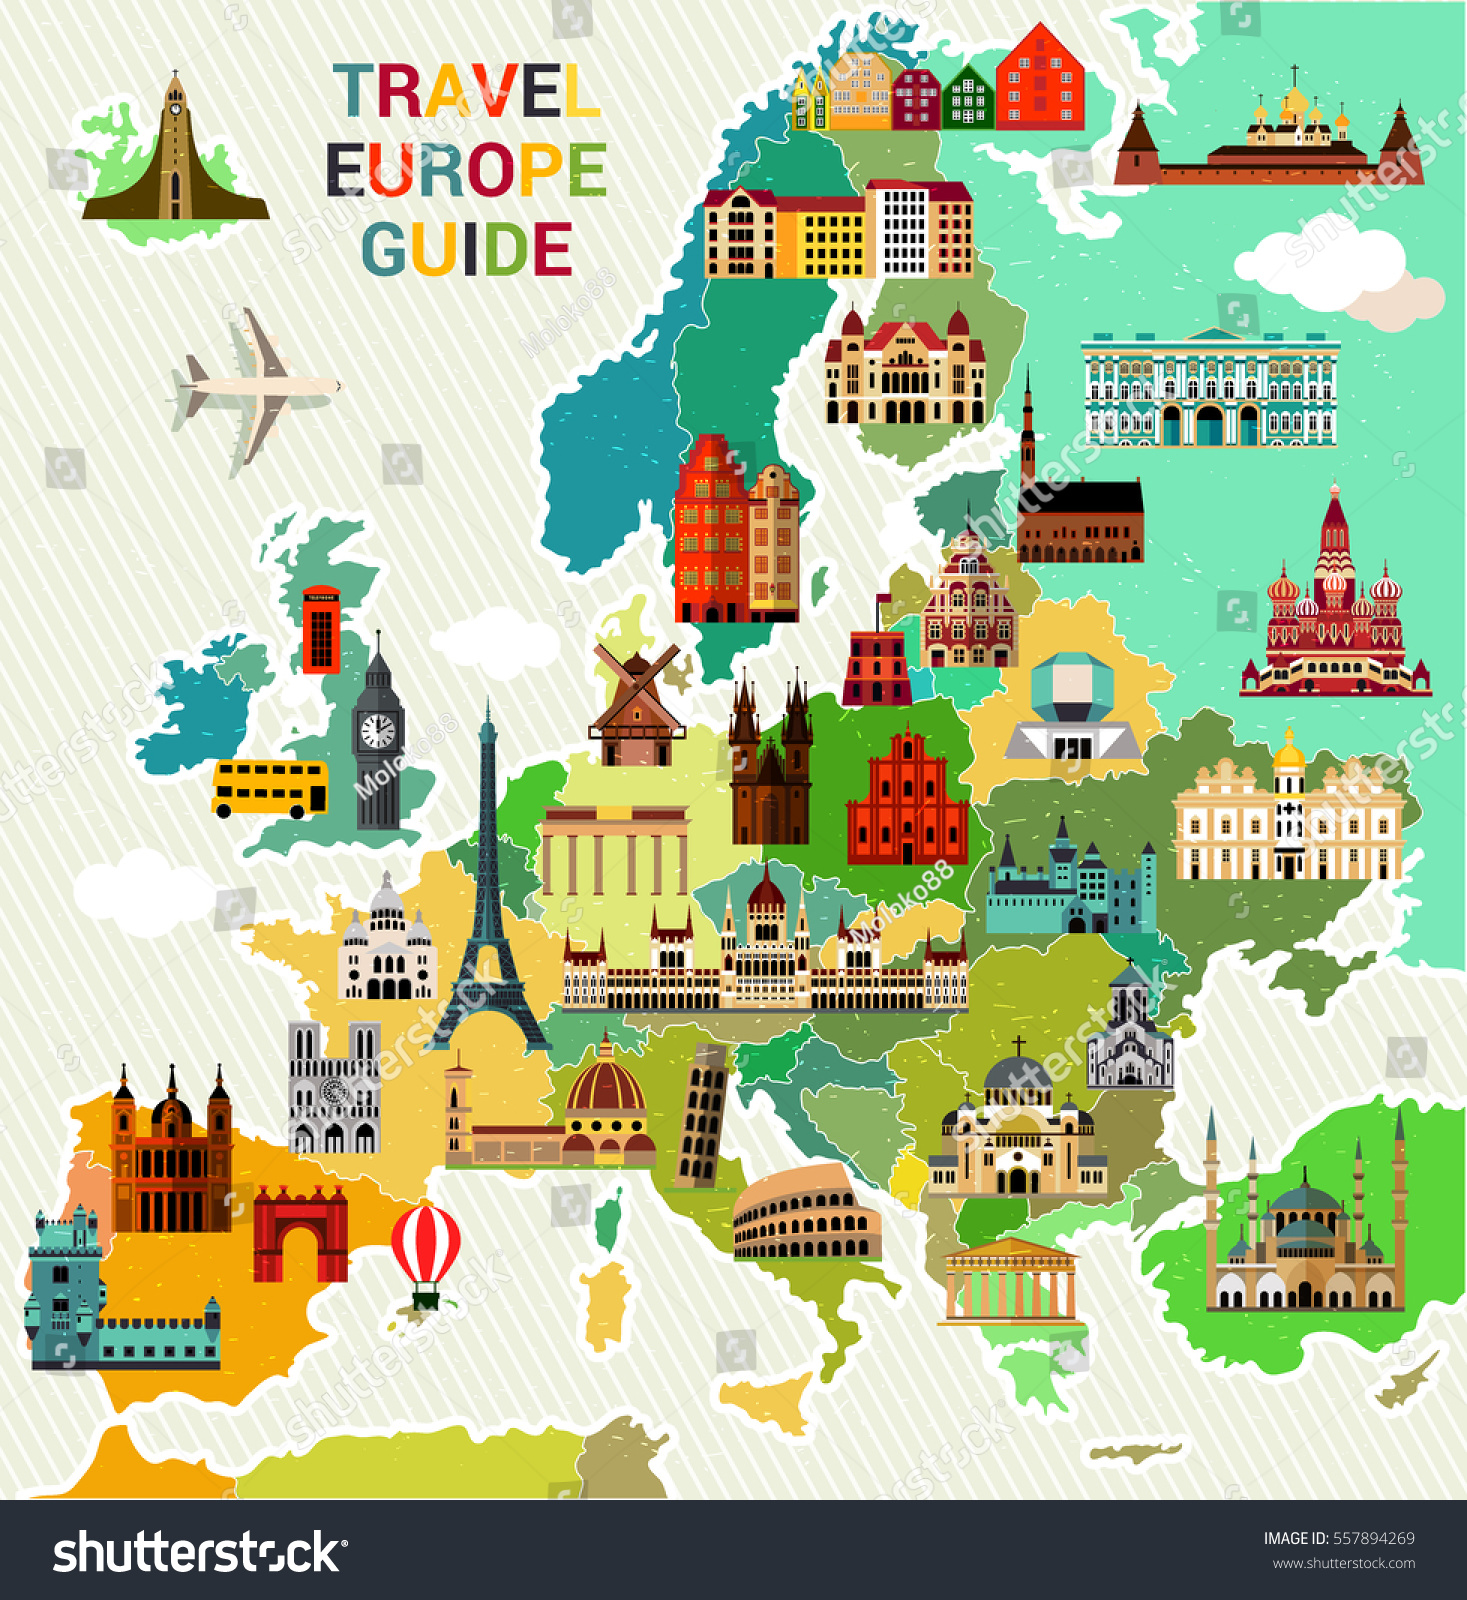 map of europe travel guide Europe Map Famous Sightseeing Travel Guide Stock Vector (Royalty